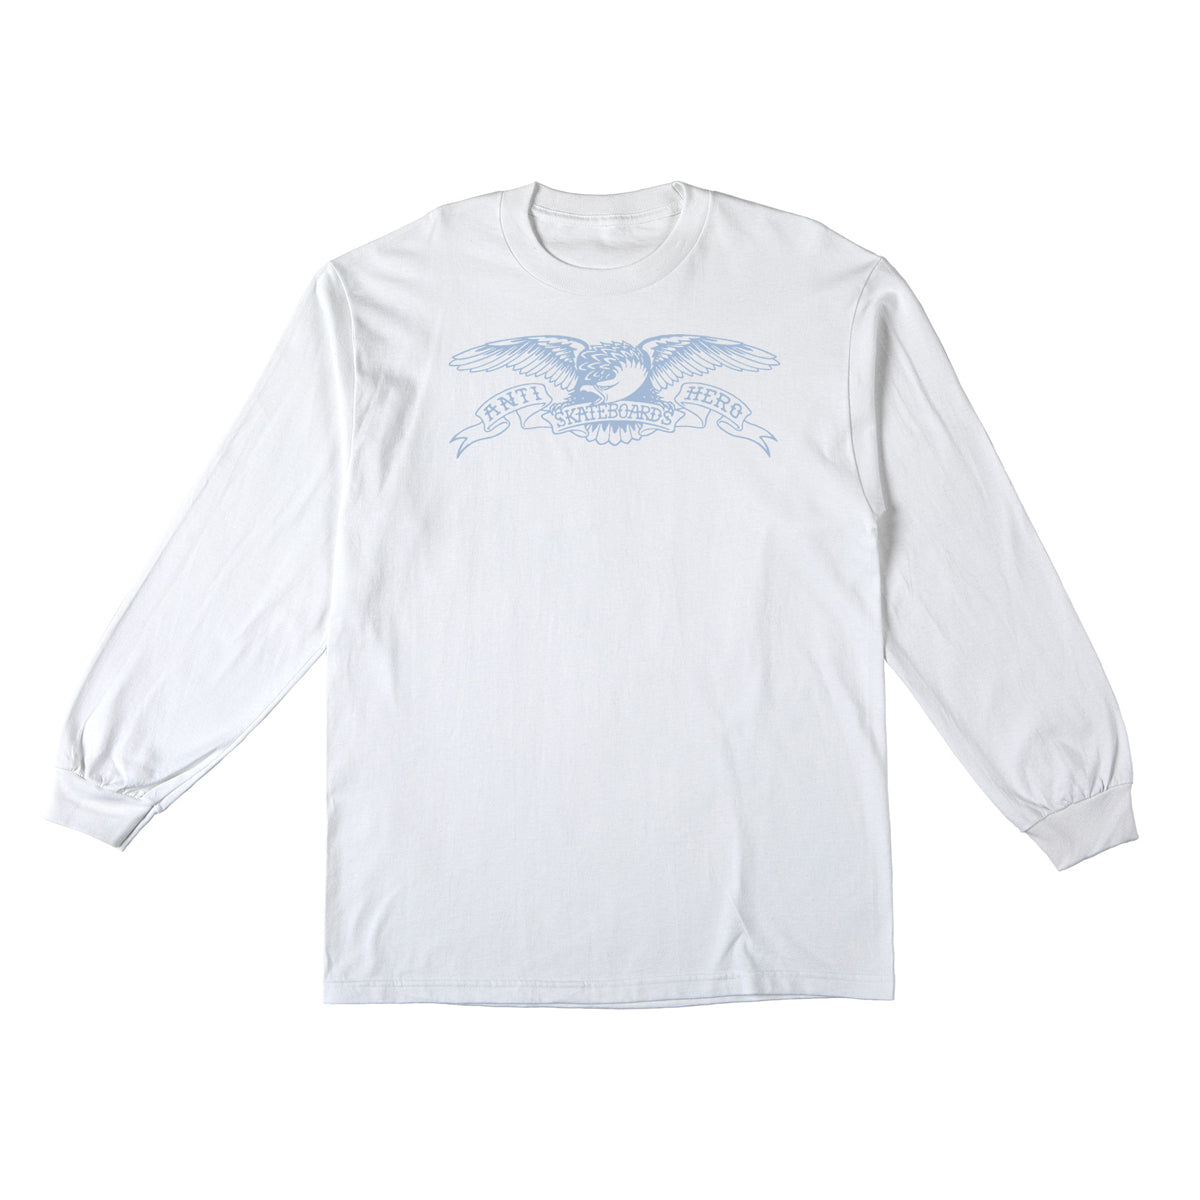 Anti-Hero Basic Eagle Long Sleeve White/Light Blue